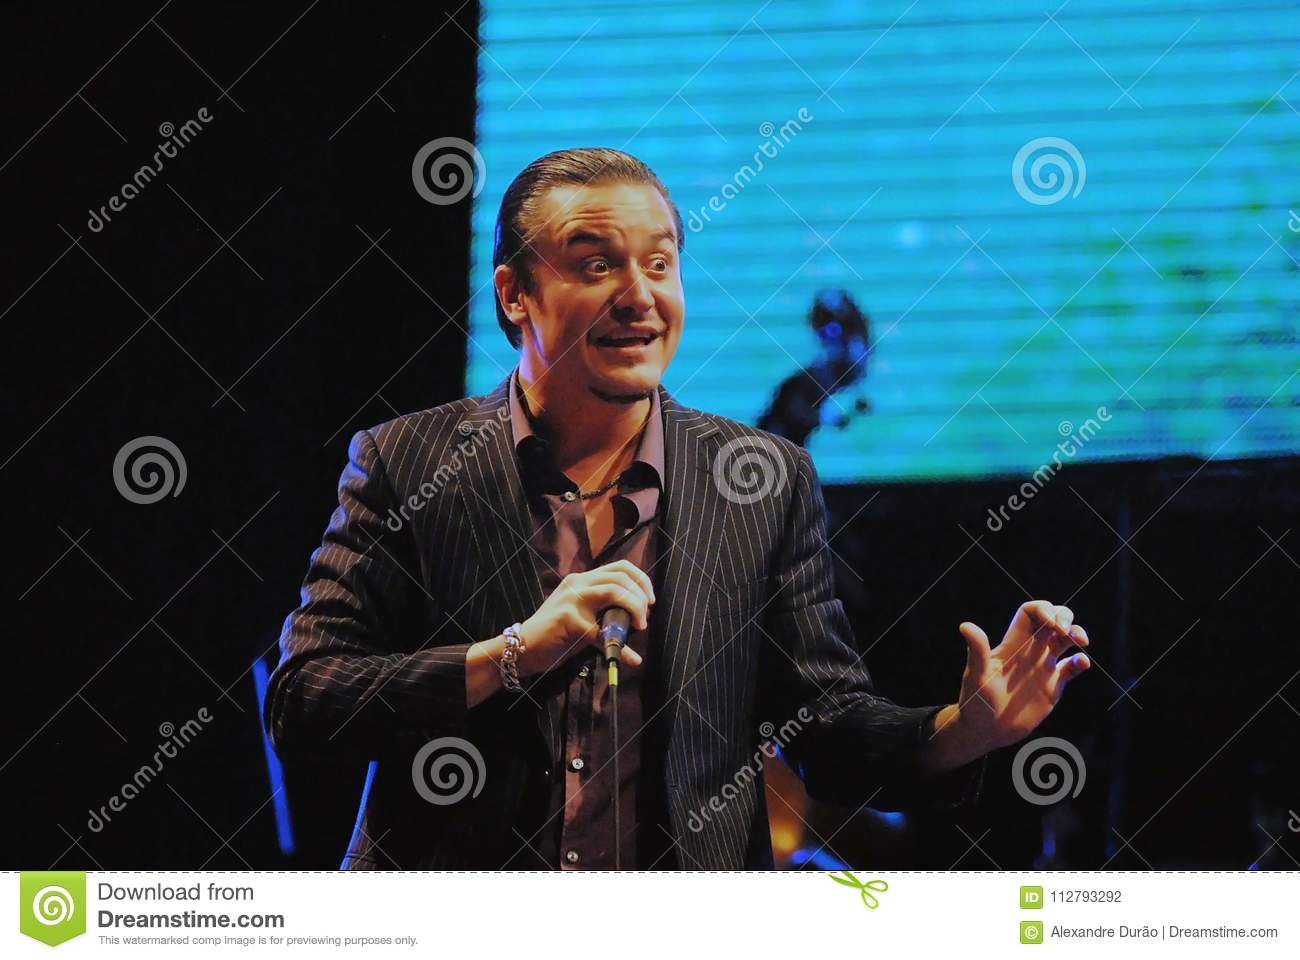 mike patton download